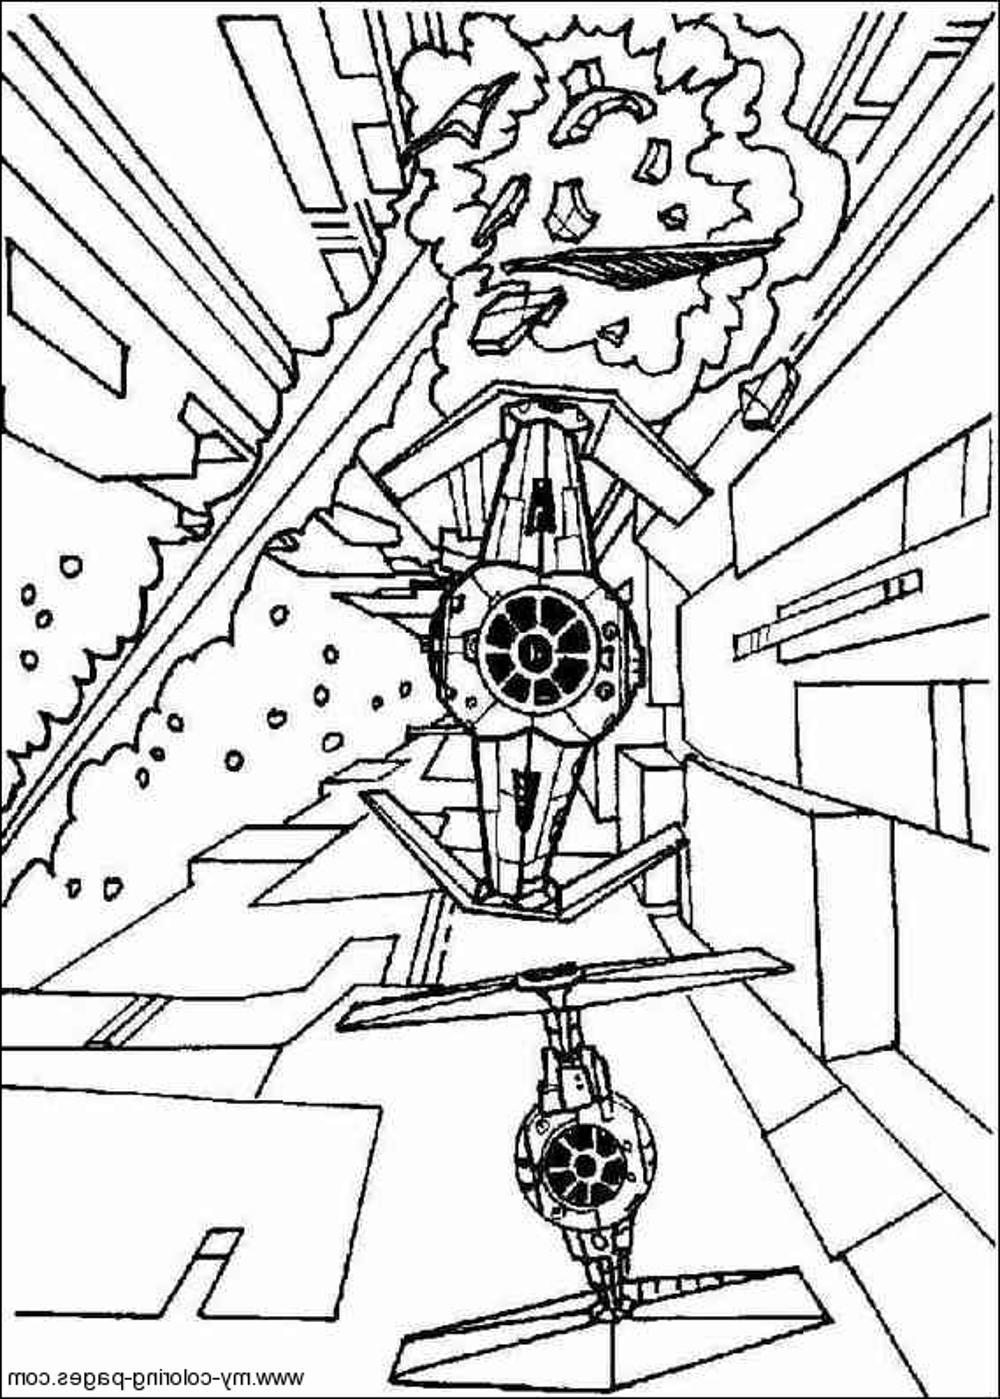 star wars coloring images star wars free to color for kids star wars kids coloring coloring star images wars